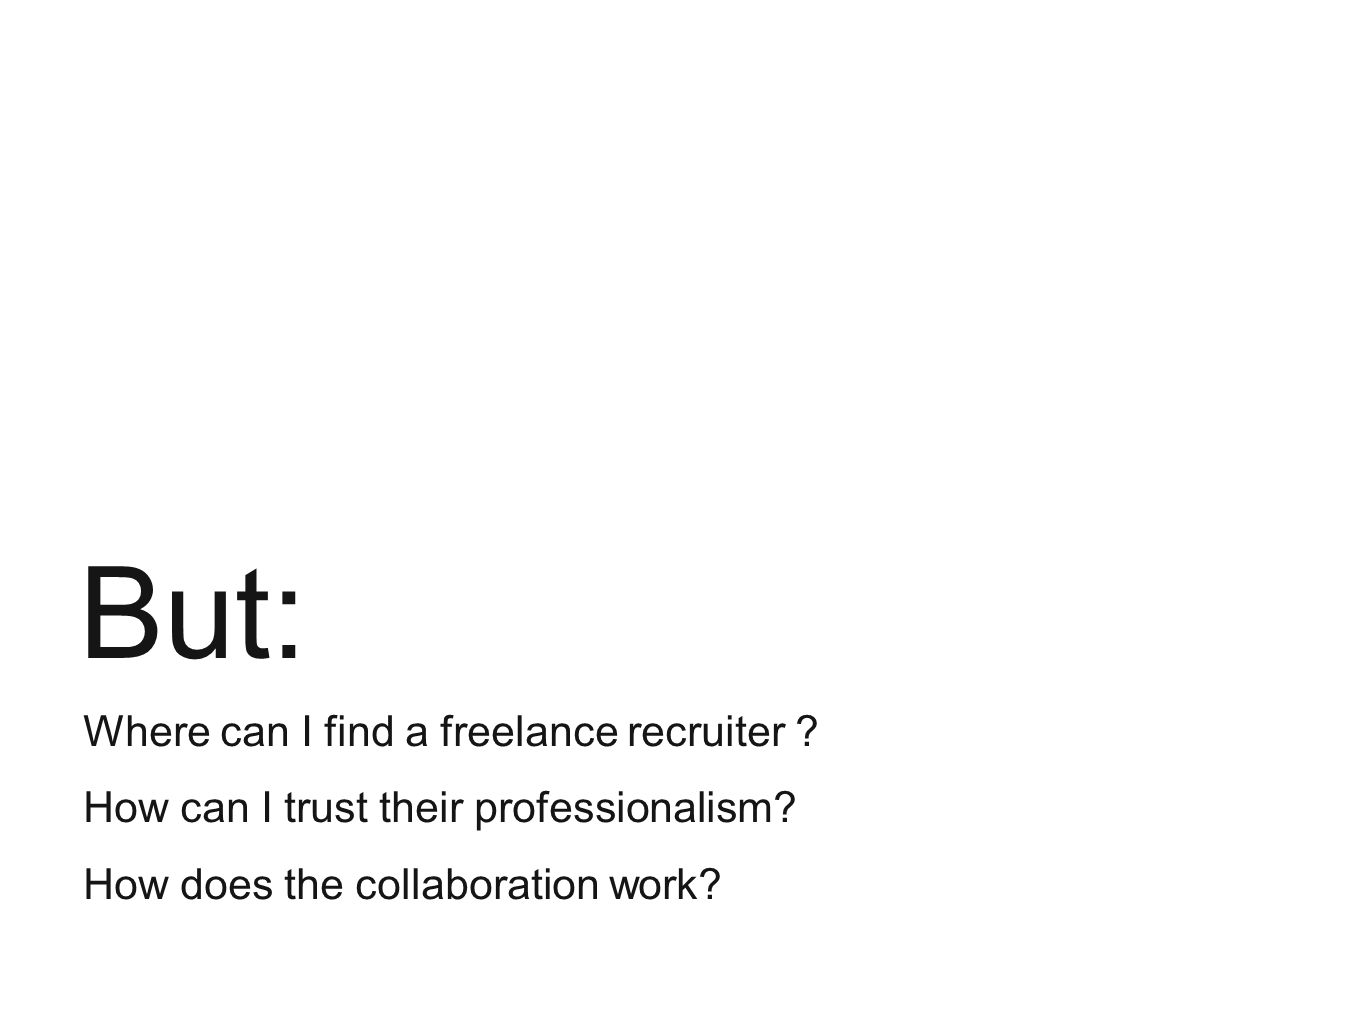 But: Where can I find a freelance recruiter ? How can I trust their professionalism? How does the collaboration work?